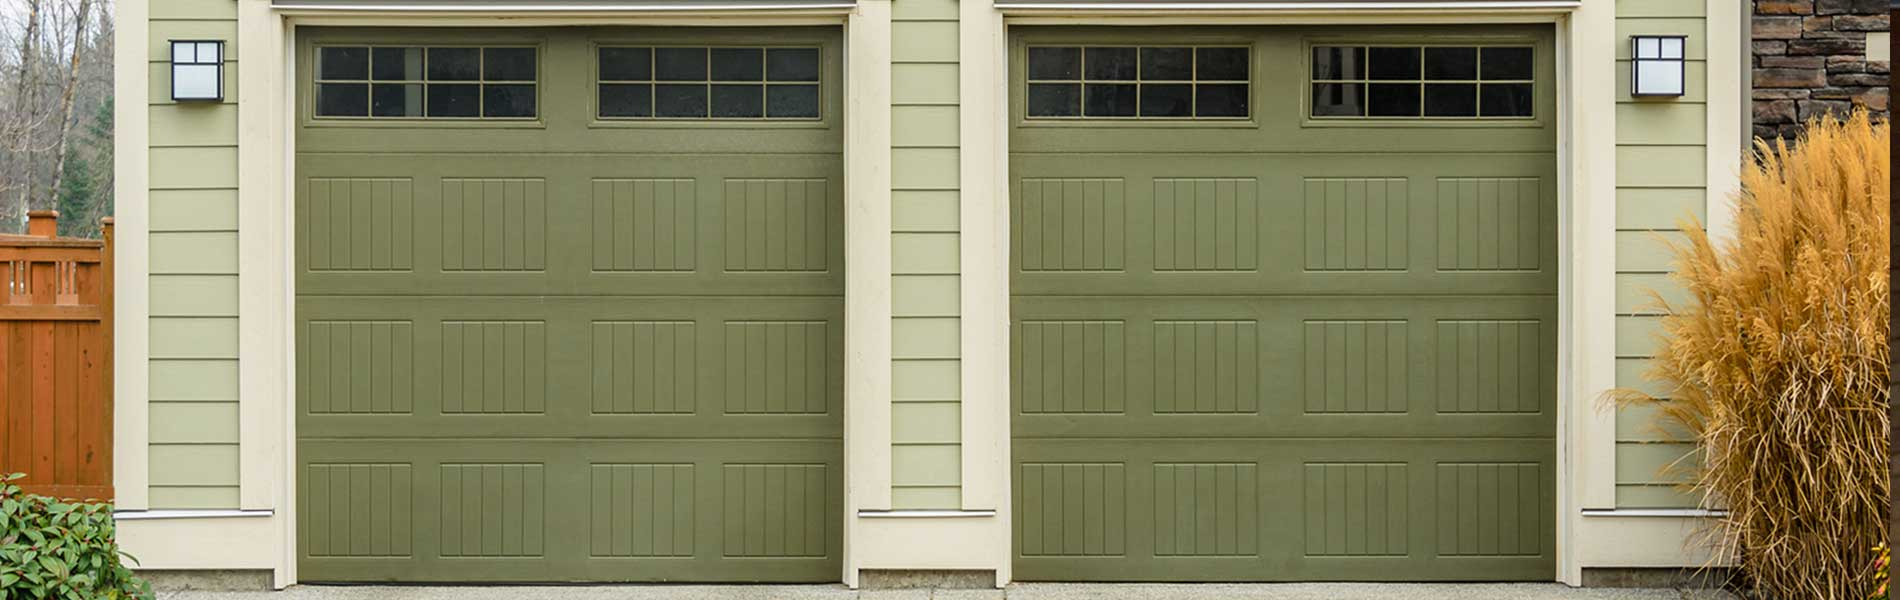 Garage Door 24 Hours Repairs, Dallas, TX 469-264-5335